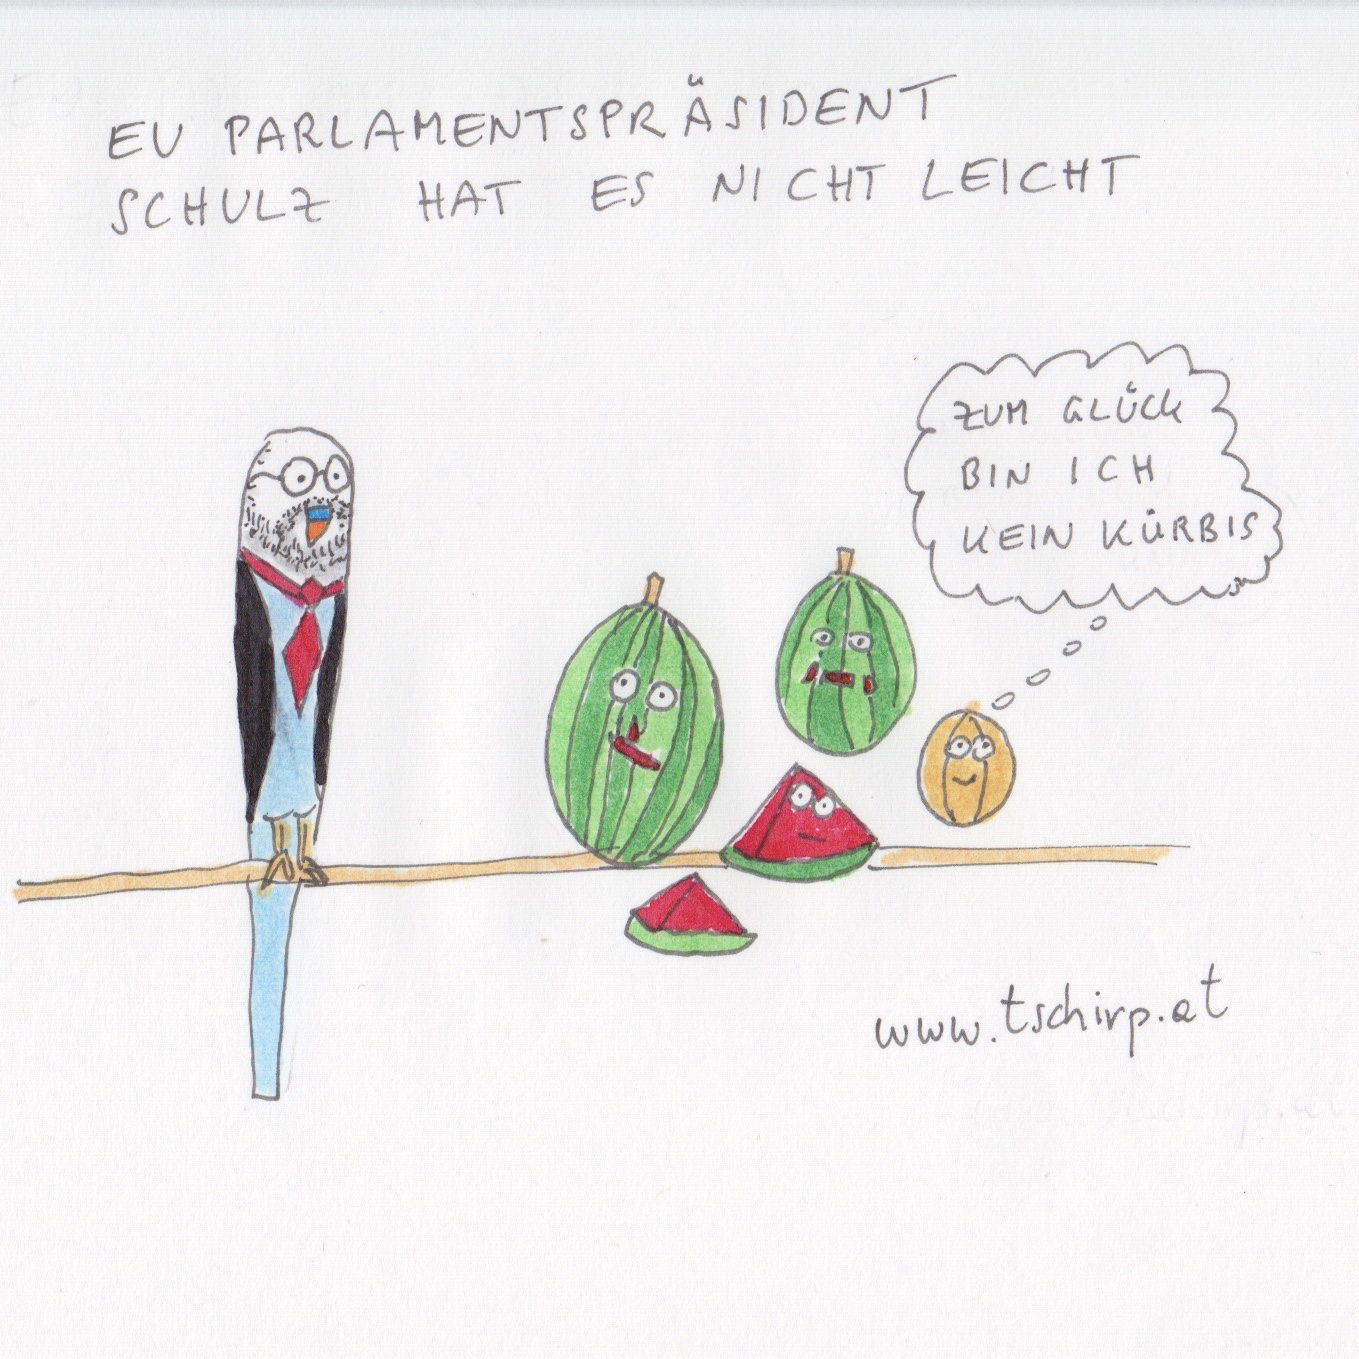 Schulz, Wallonen, CETA, Wellensittich